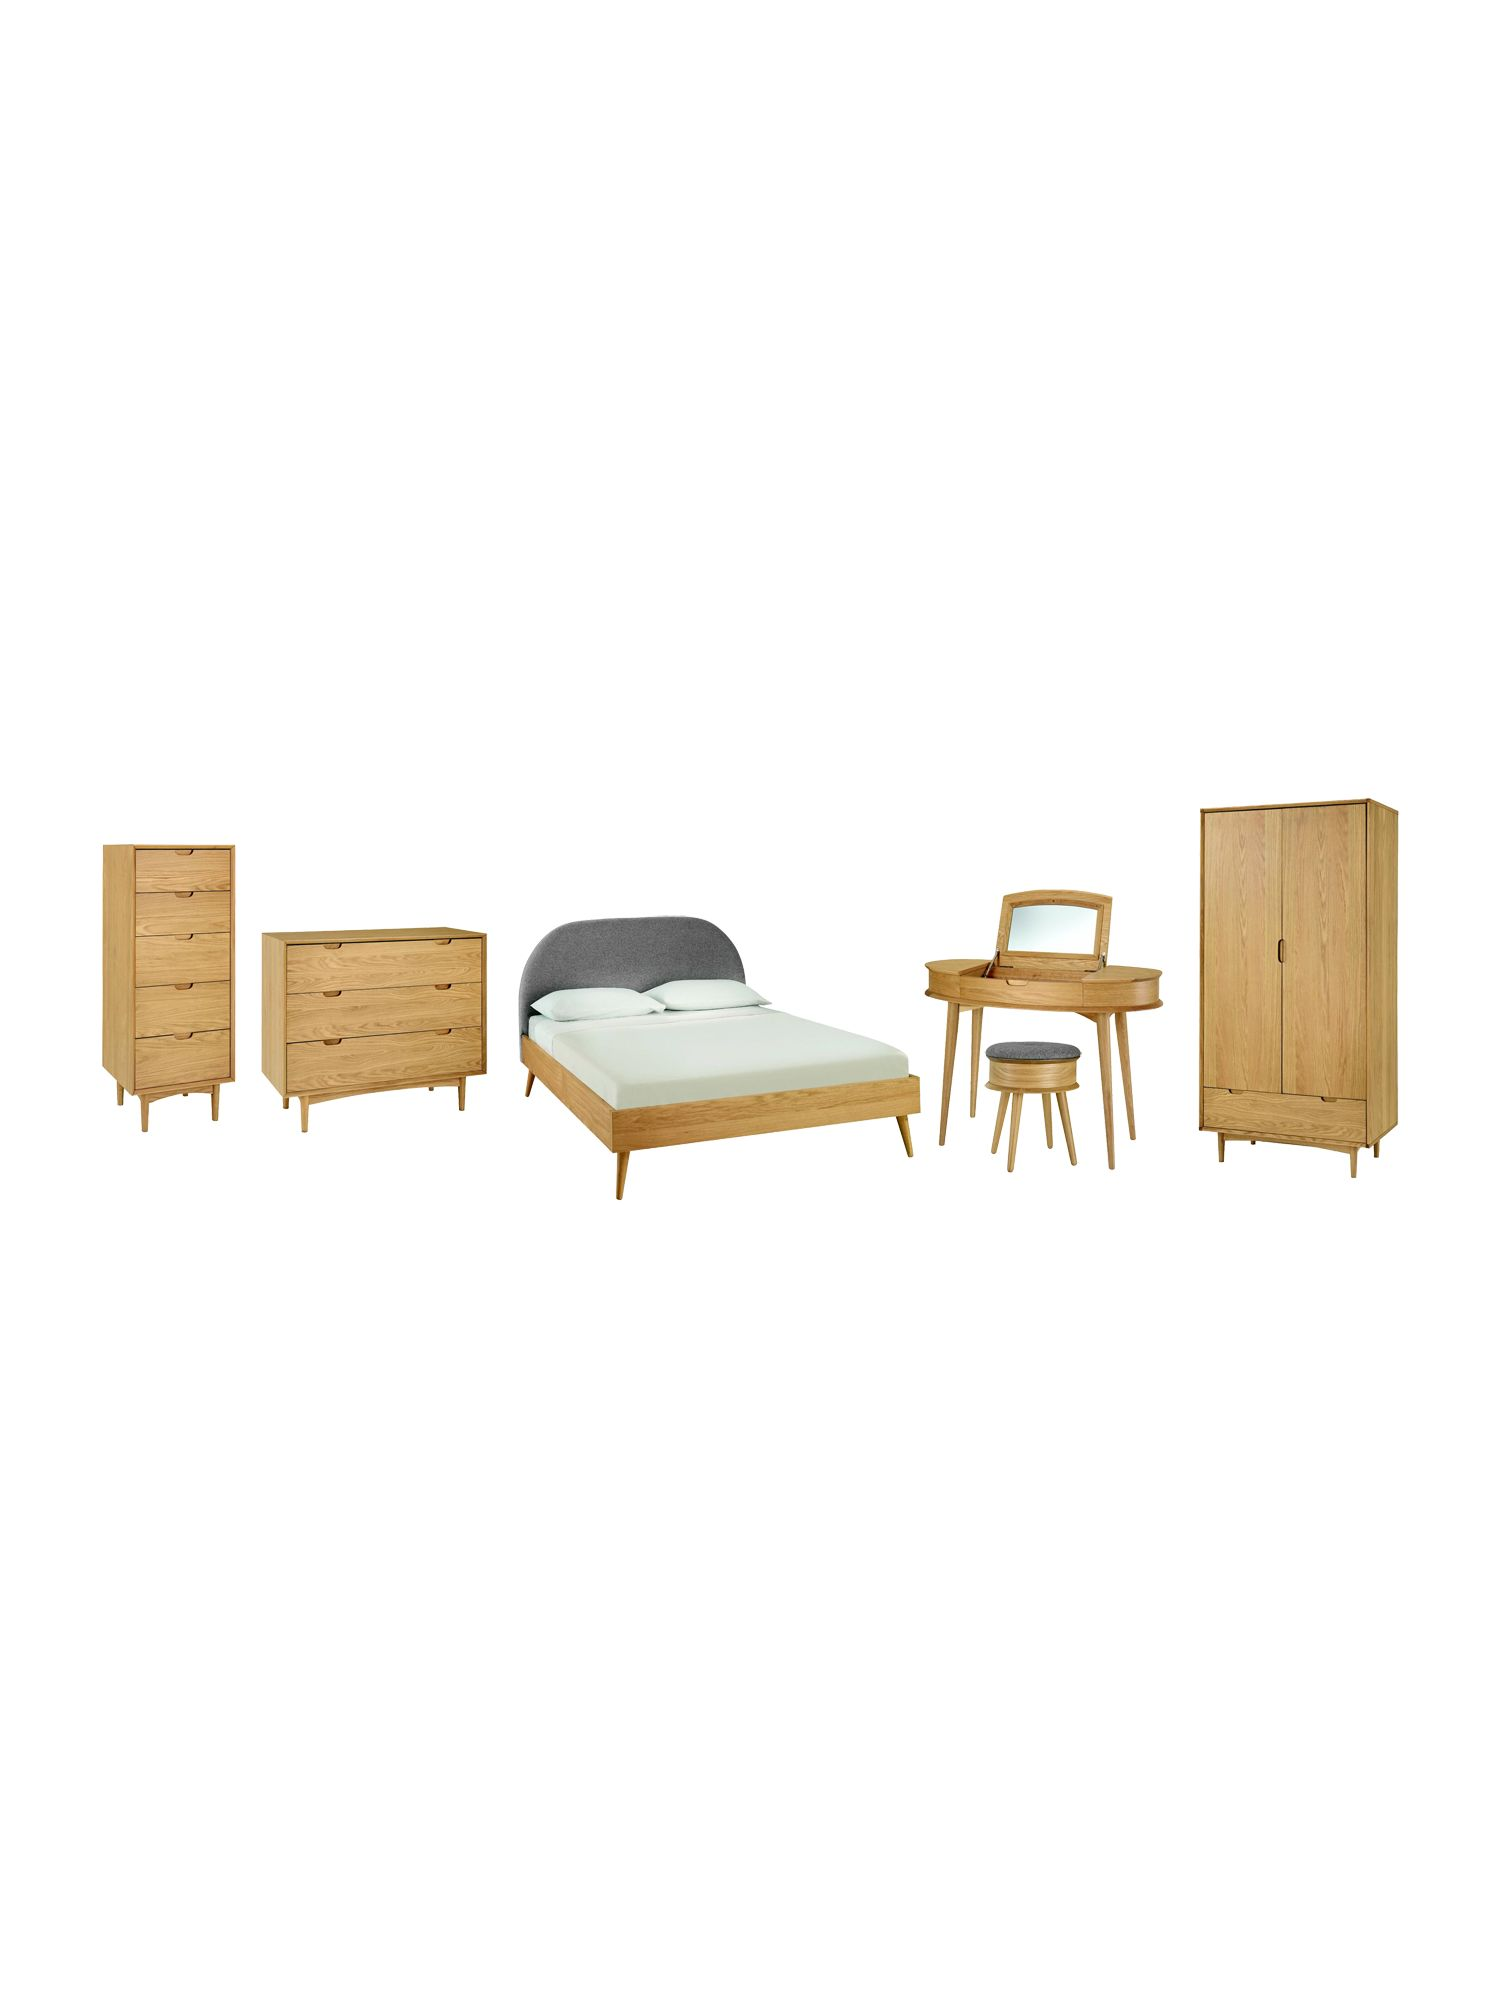 Hoxton bedroom range